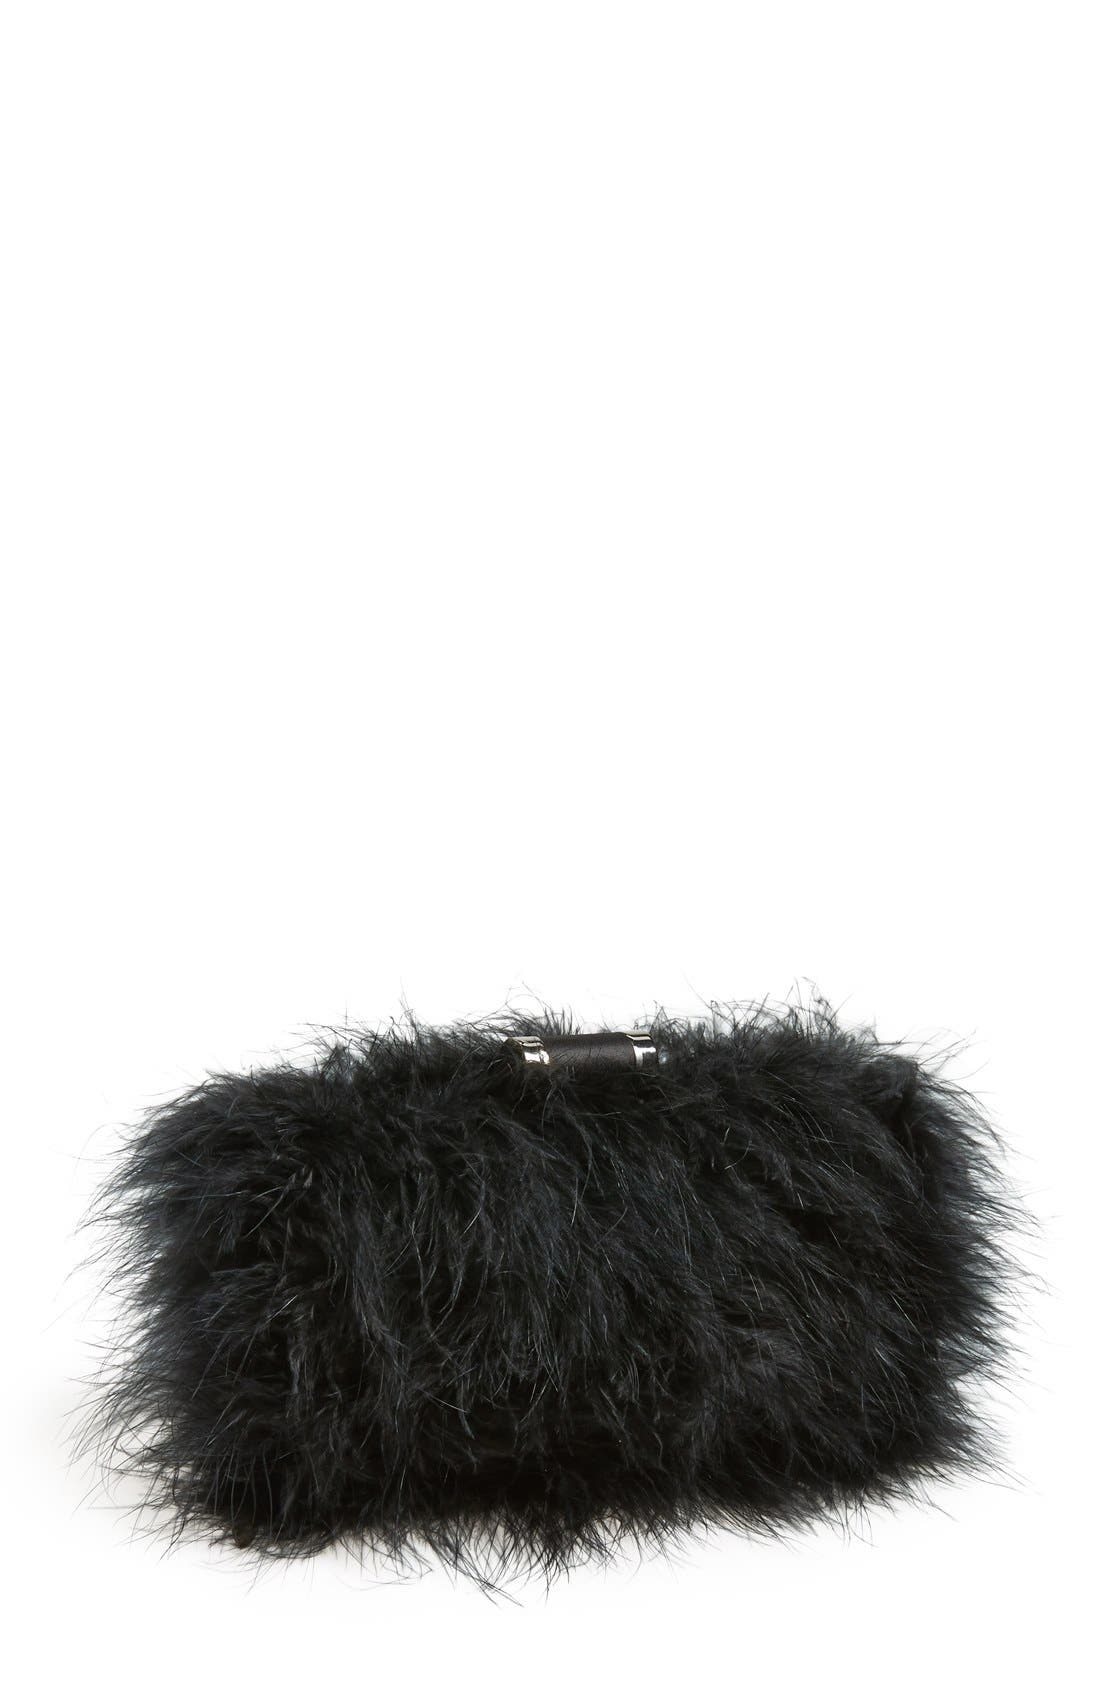 Alternate Image 1 Selected - Sondra Roberts 'Furry Monster' Feather Clutch